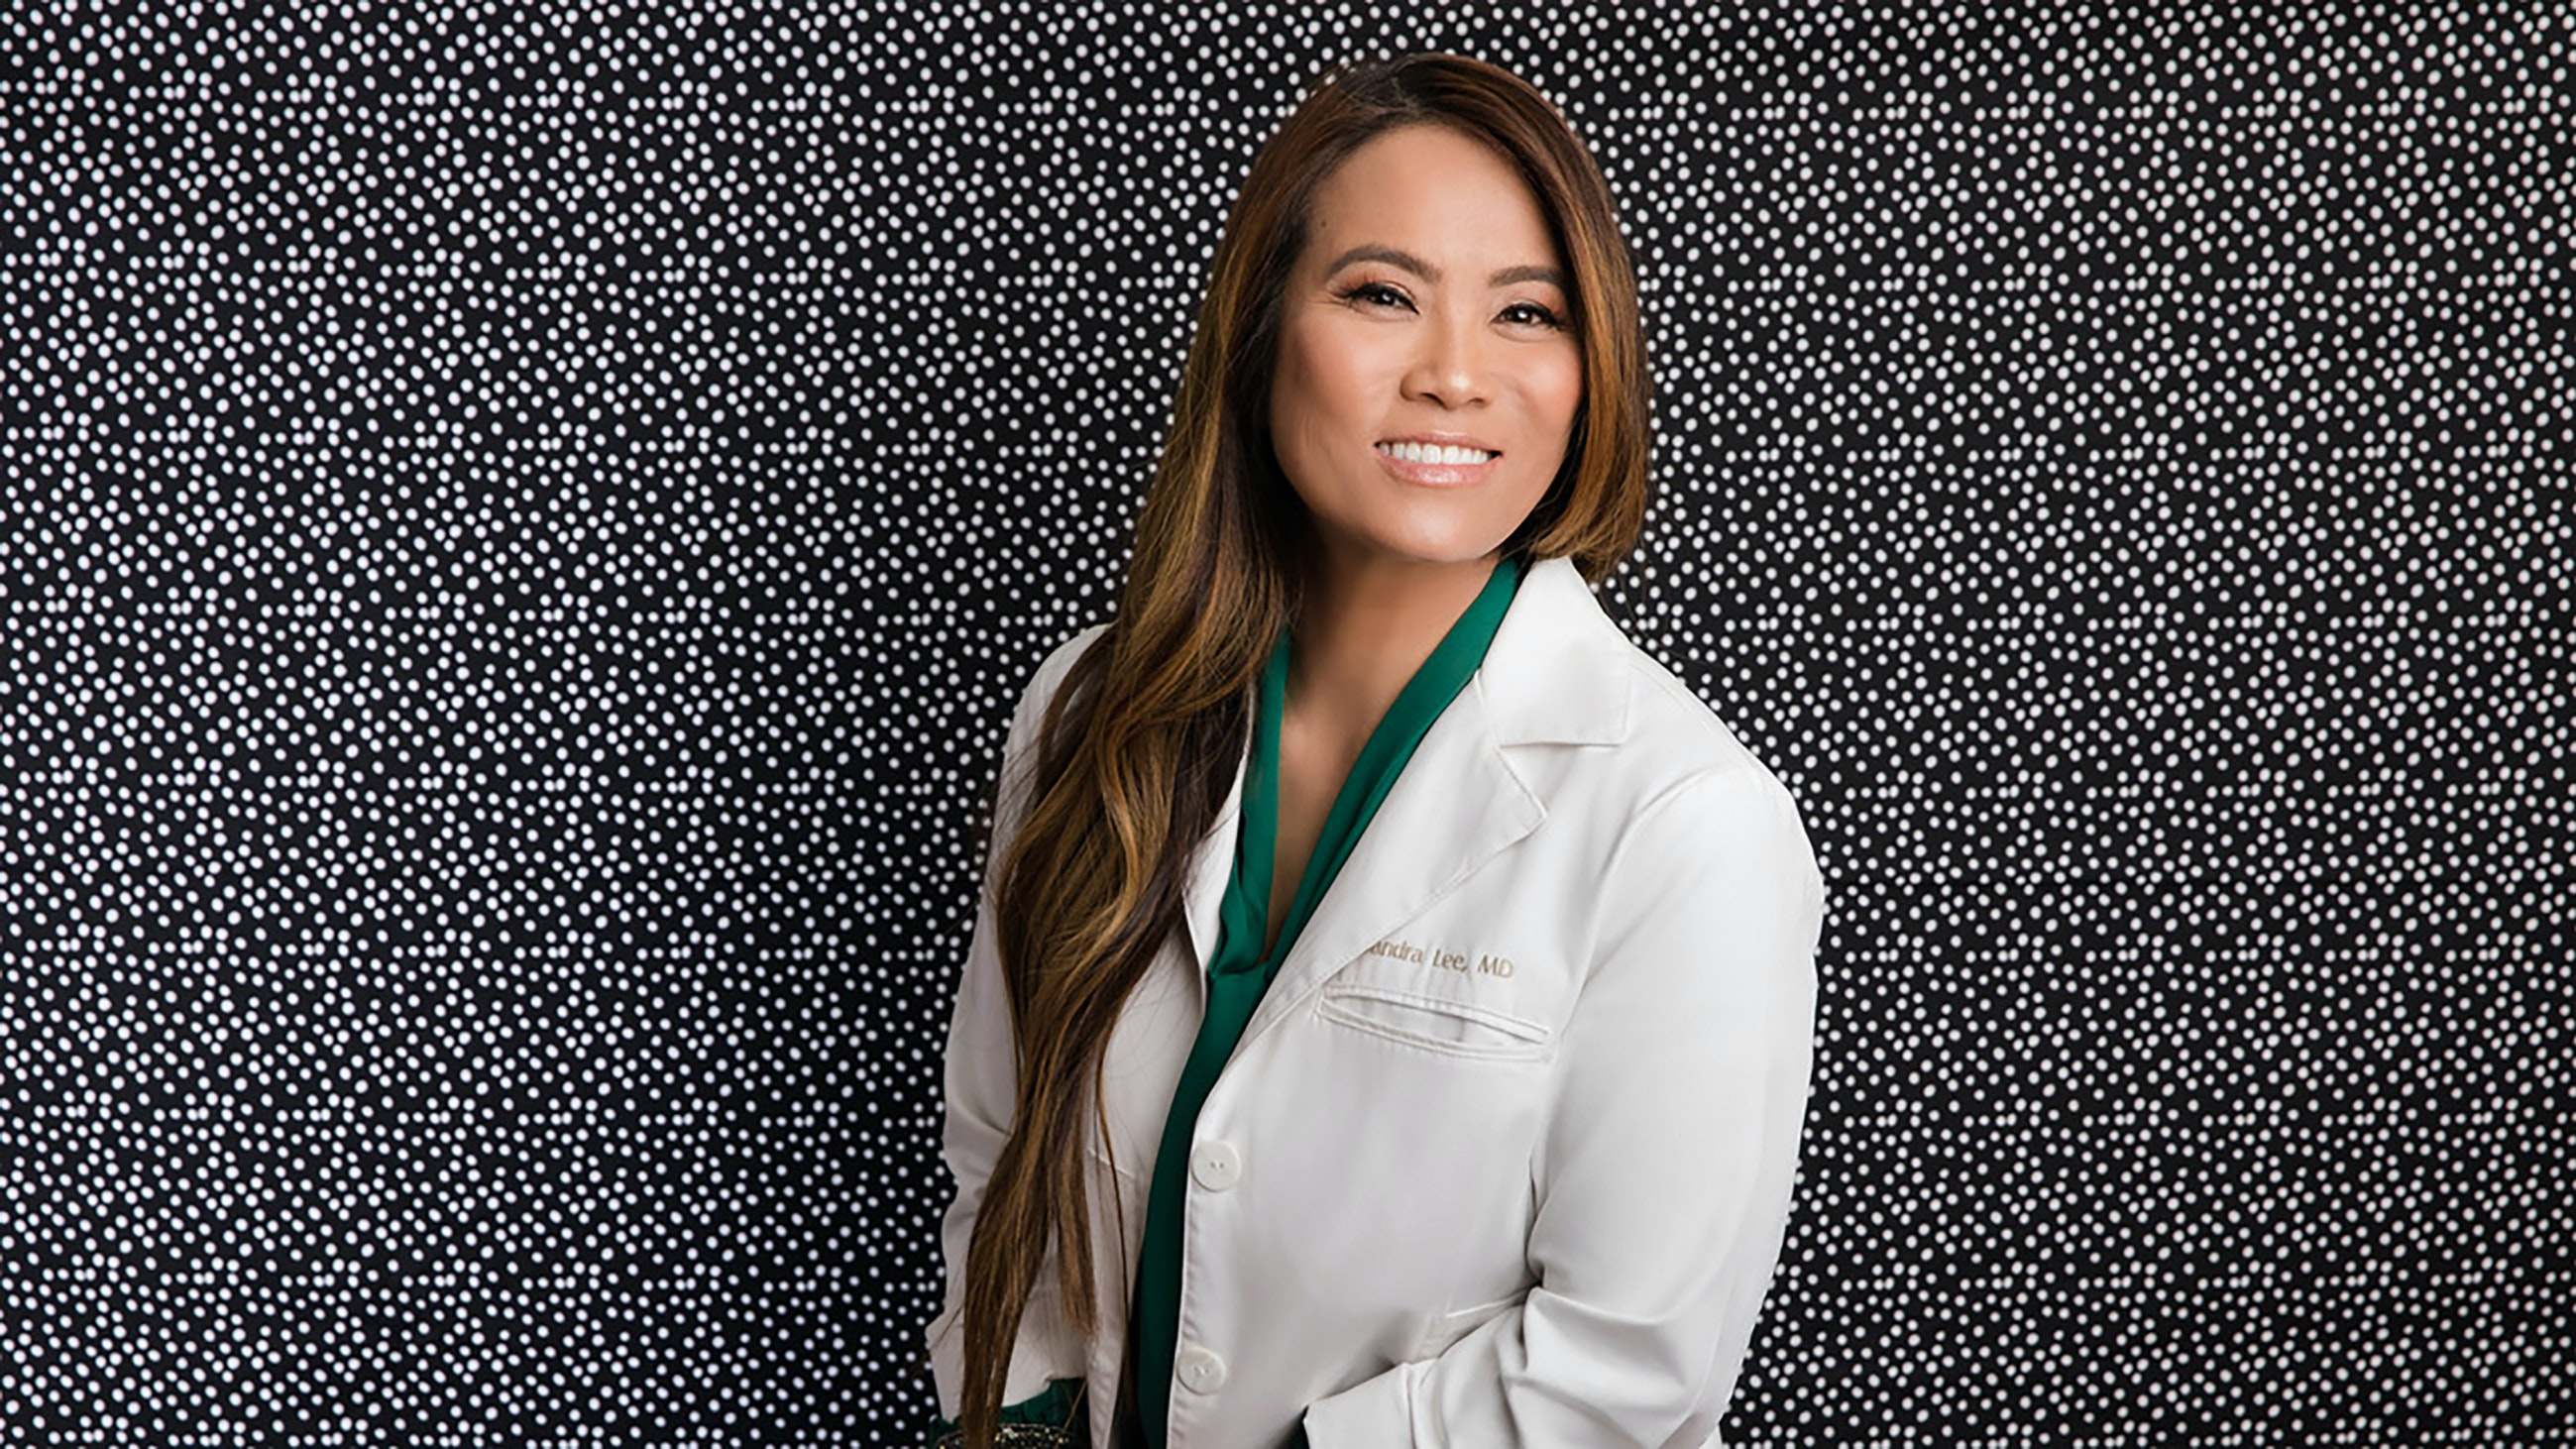 Dr. Sandra Lee pimple popper